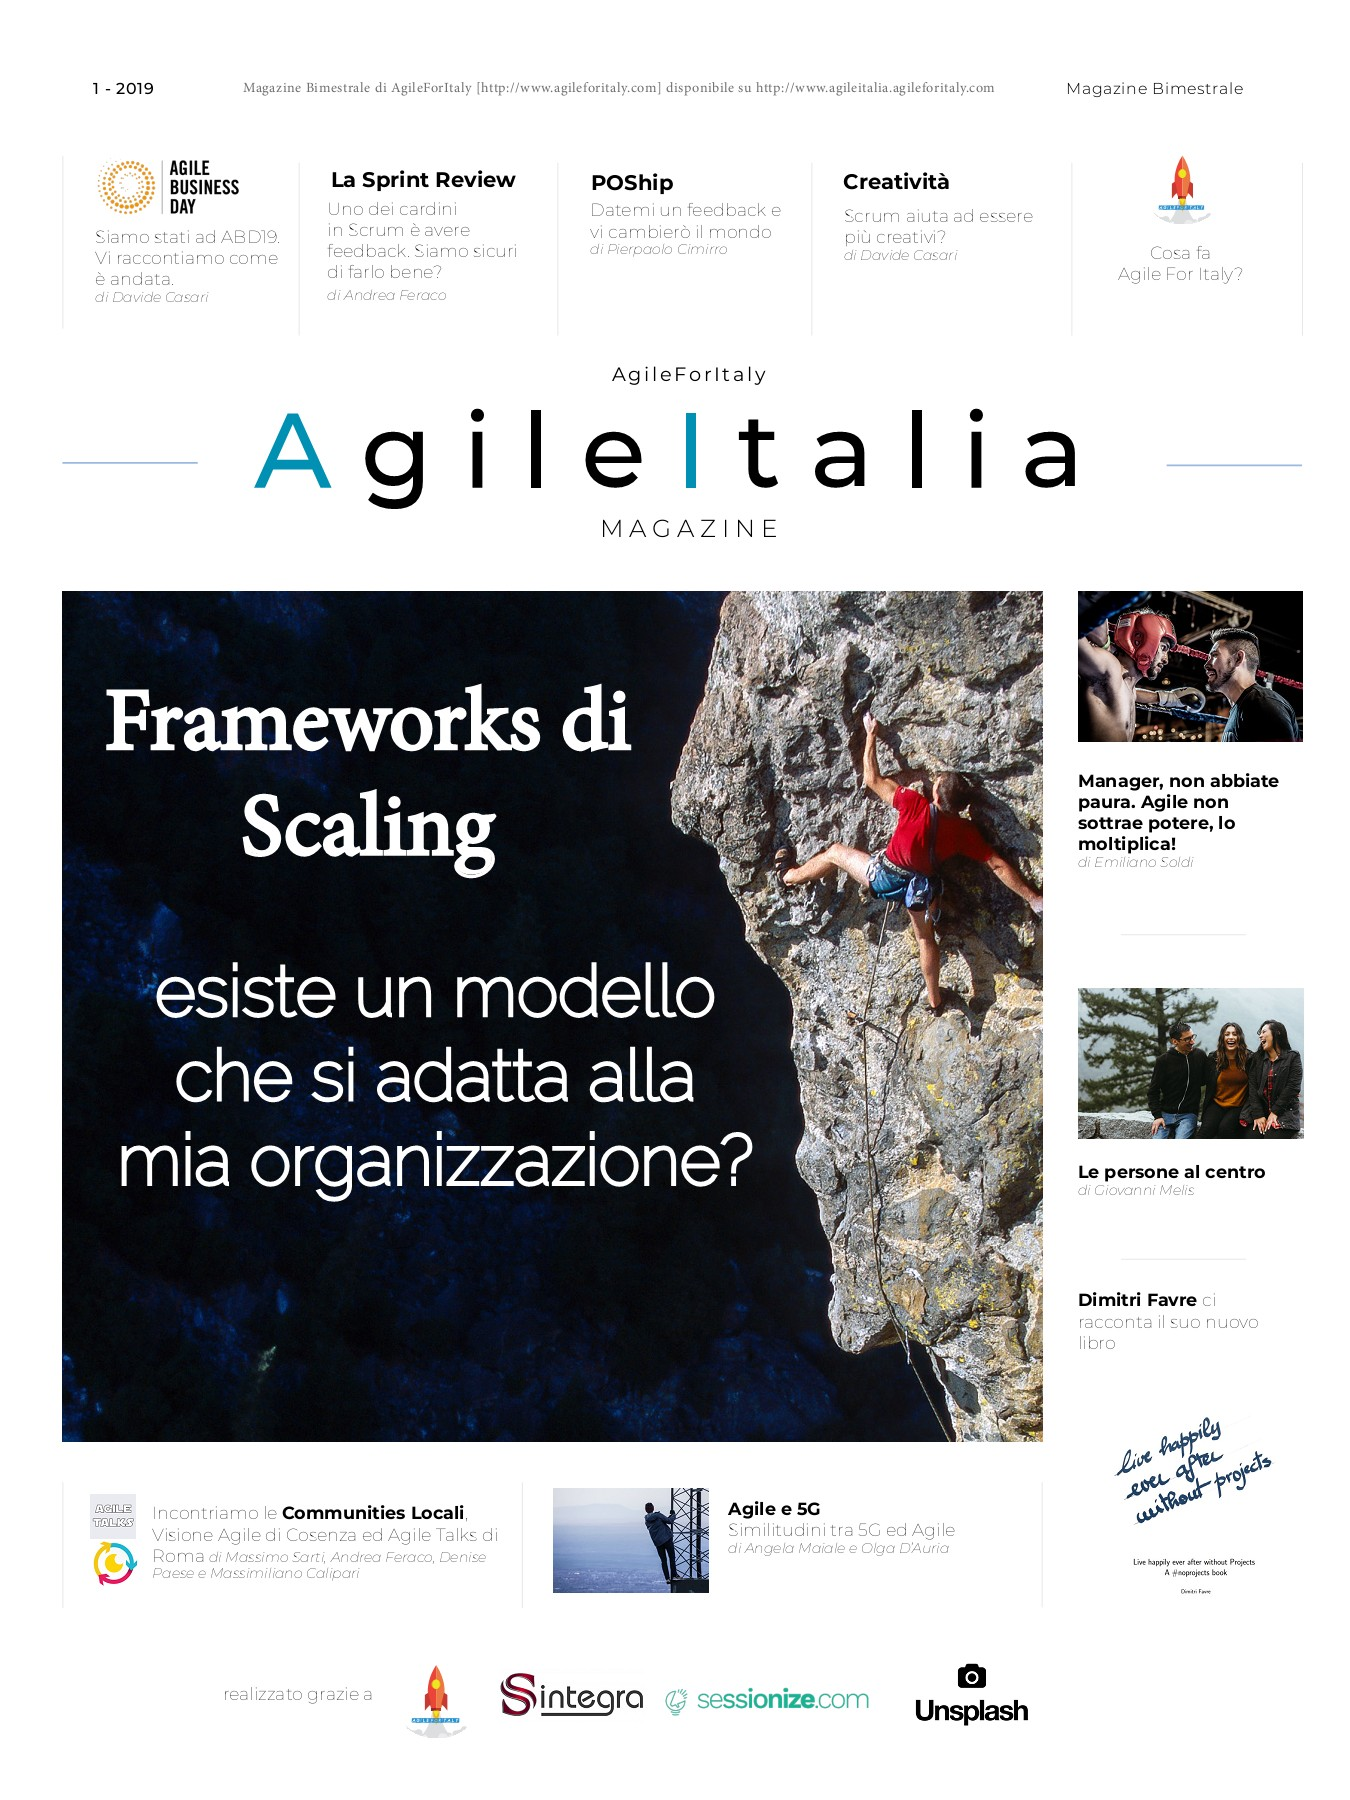 Scale Interne Poco Ingombranti 1_2019: frameworks di scaling-flip book pages 1-50   pubhtml5